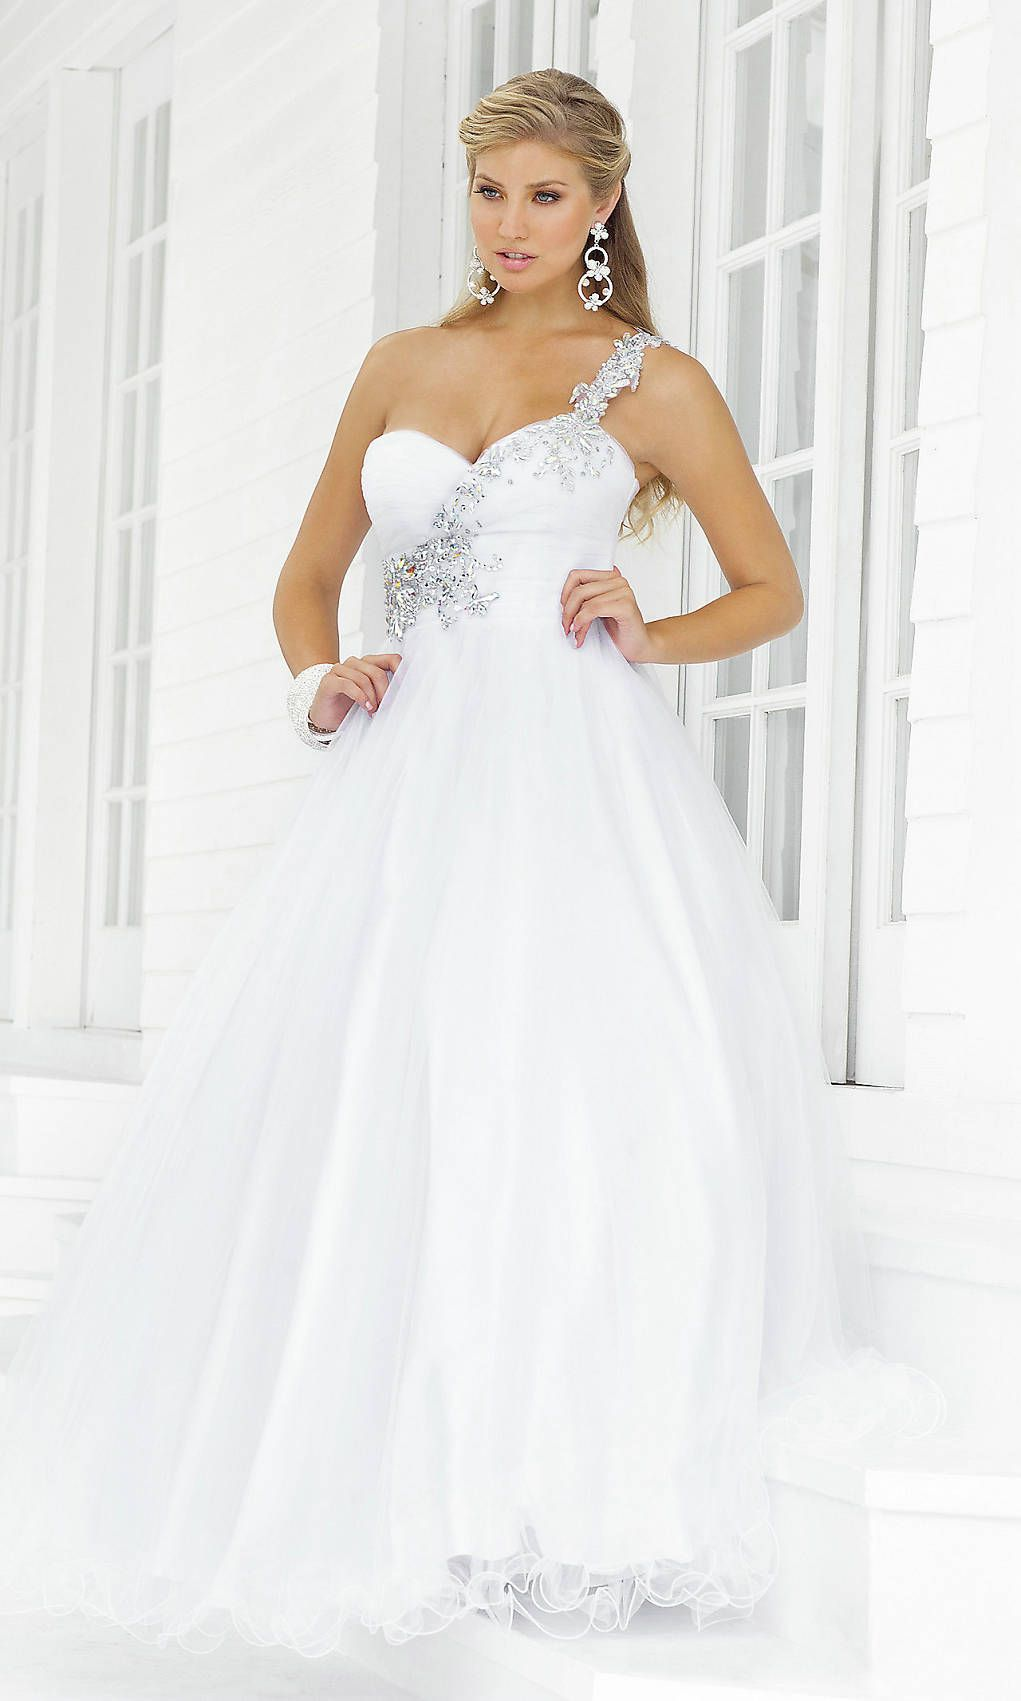 17 Best images about White Prom Dresses on Pinterest | Embellished ...